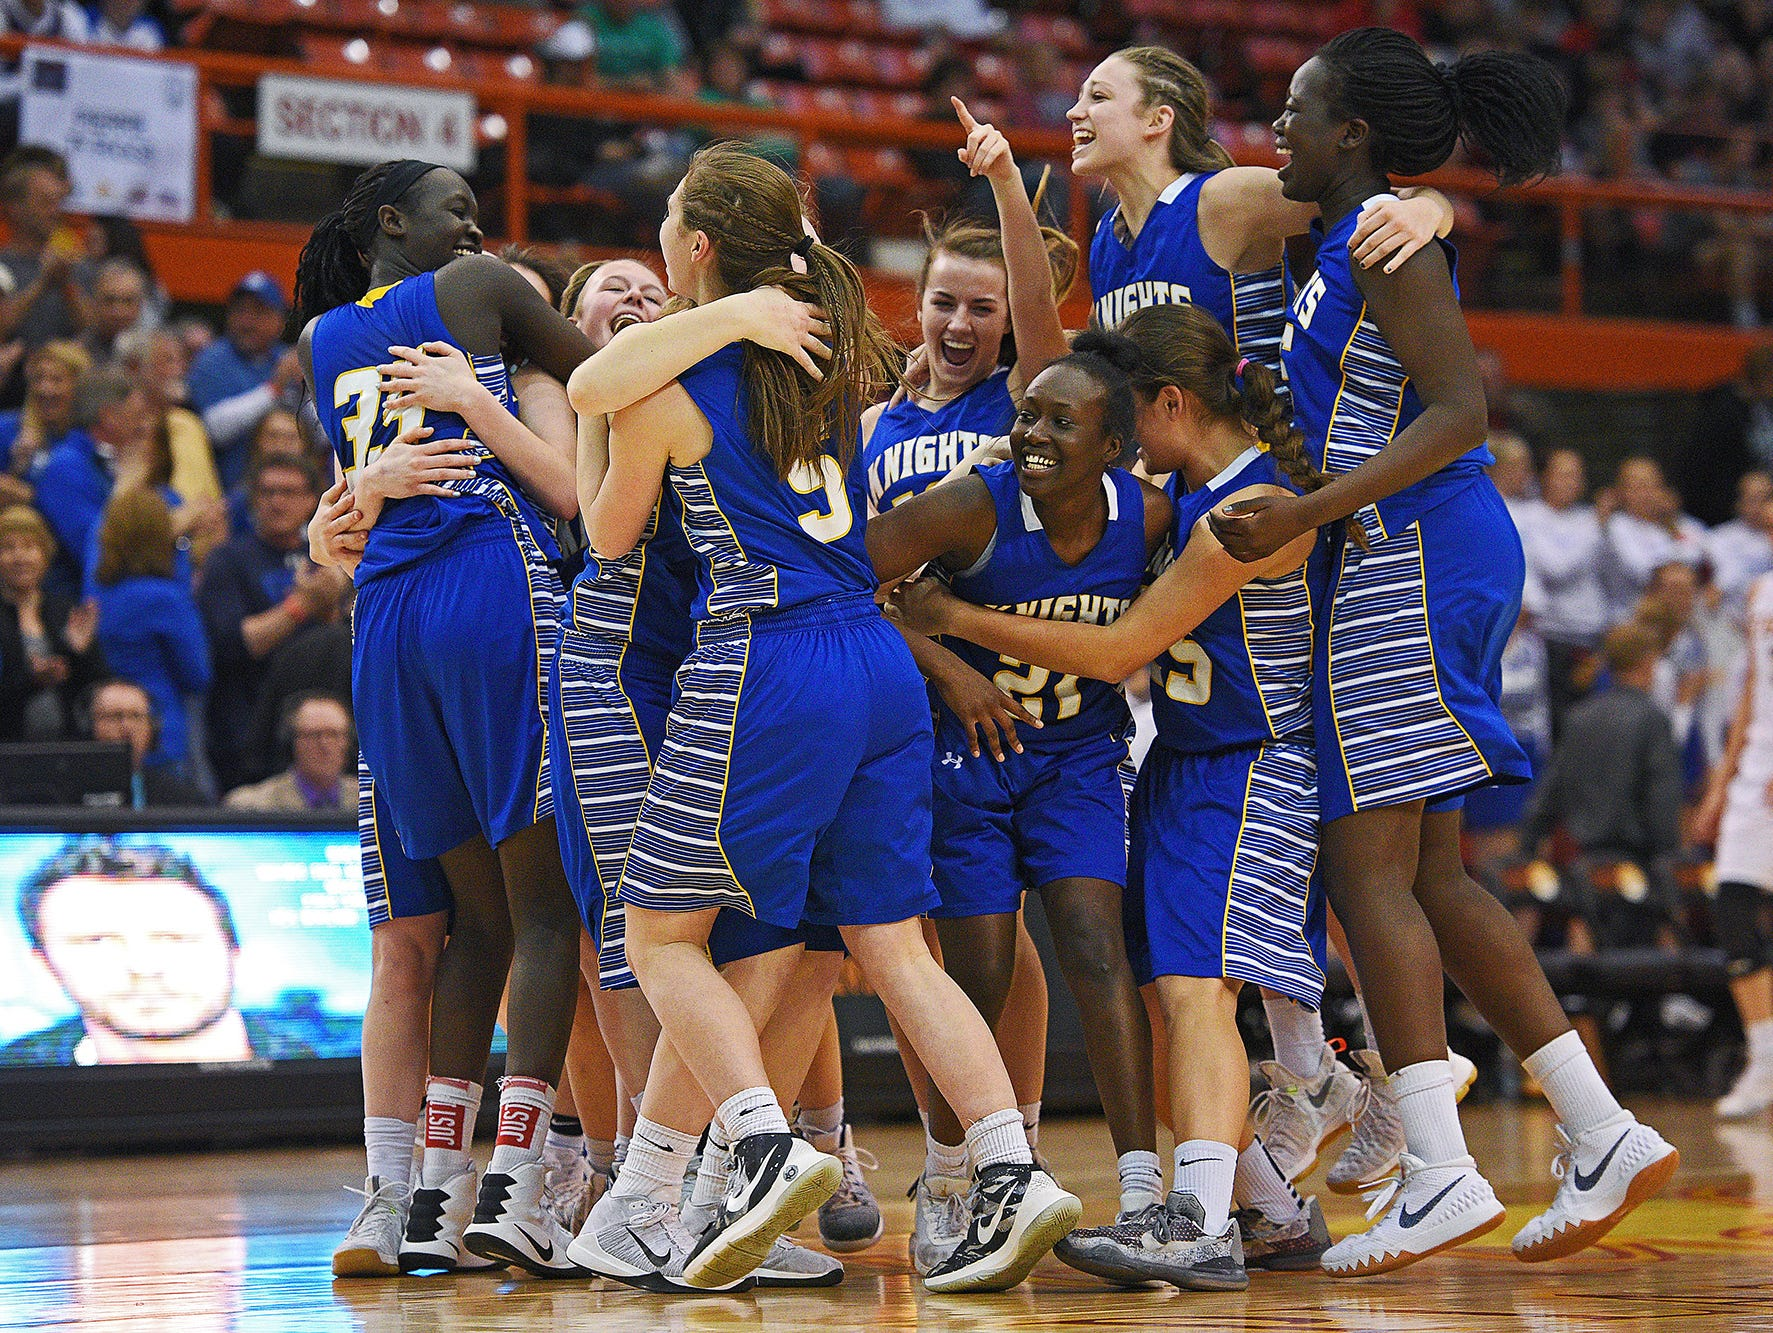 O'Gorman players celebrate their team's 53-48 overtime win over Harrisburg in the 2017 SDHSAA Class AA State Girls Basketball championship game Saturday, March 18, 2017, at Rushmore Plaza Civic Center in Rapid City.